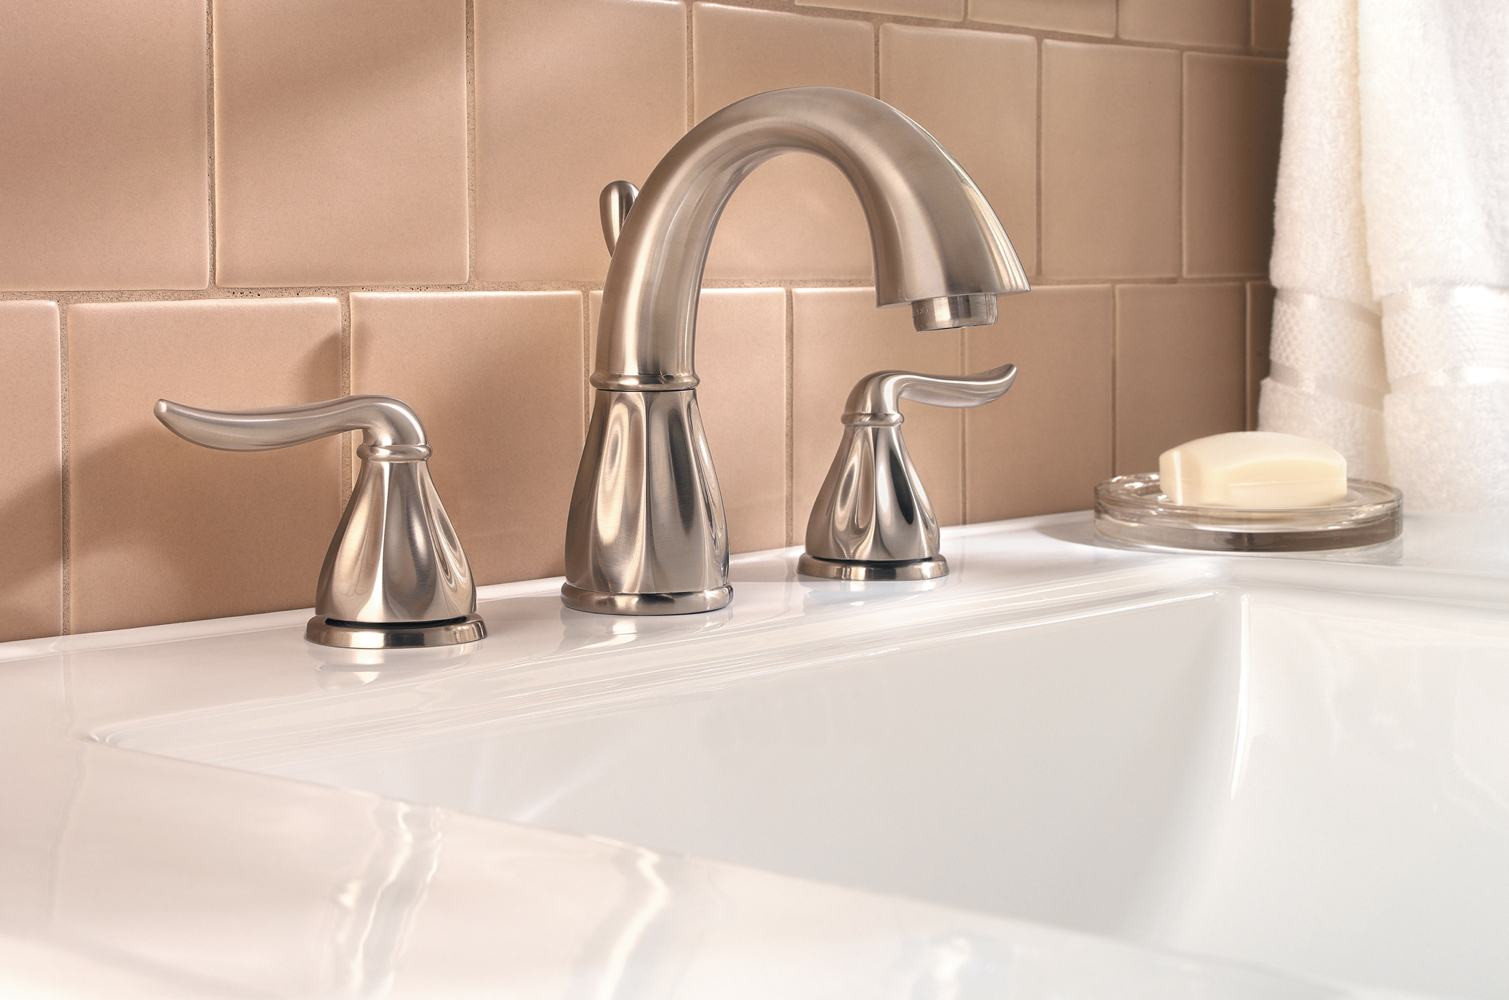 Pfister Sedona 2 Handle 8 Widespread Bathroom Faucet In Brushed Nickel